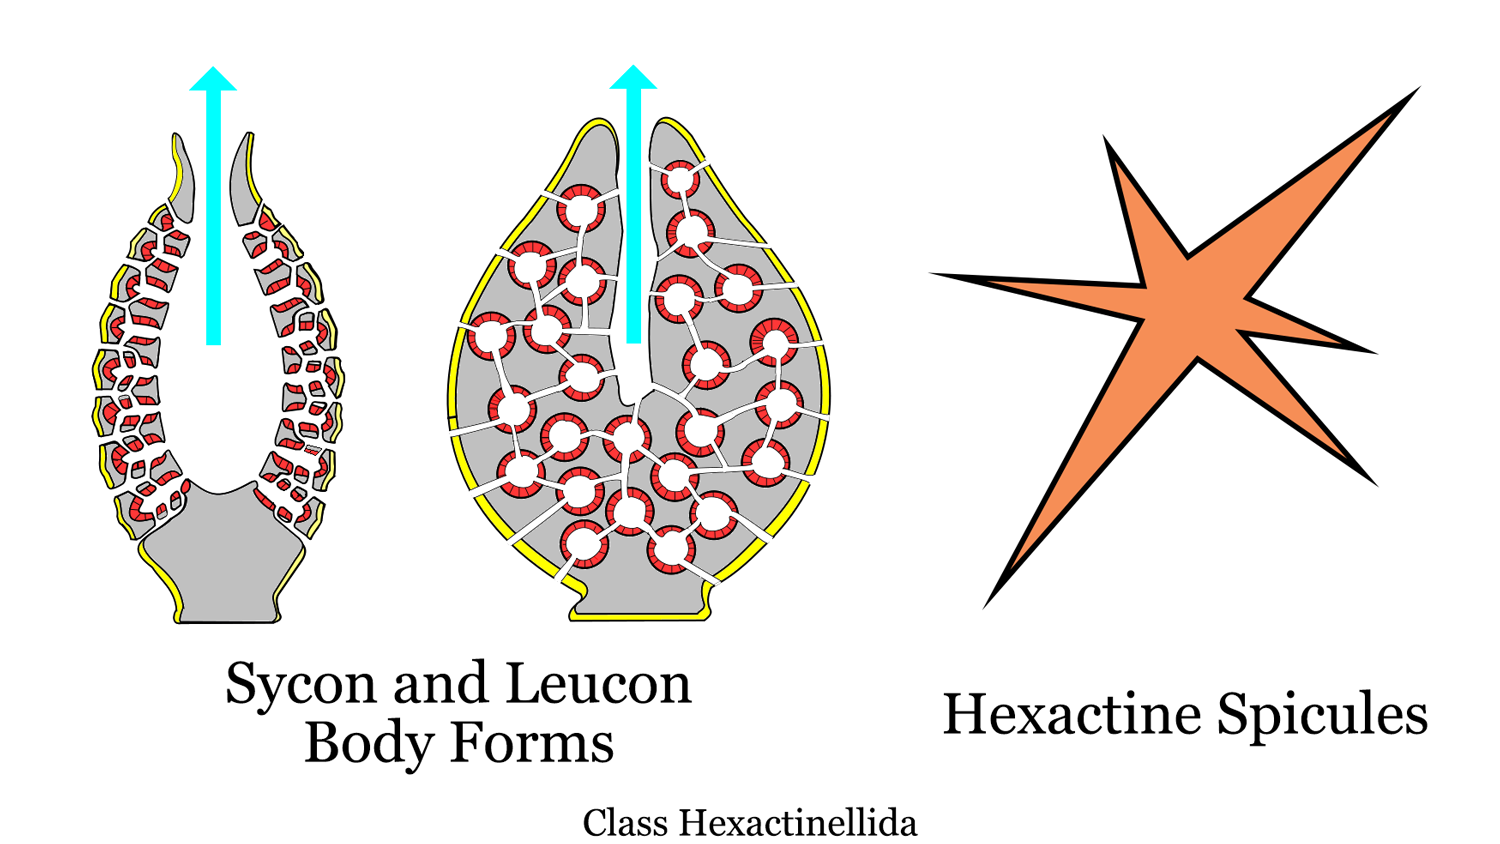 Diagram showing Hexactinellida body plan and spicules